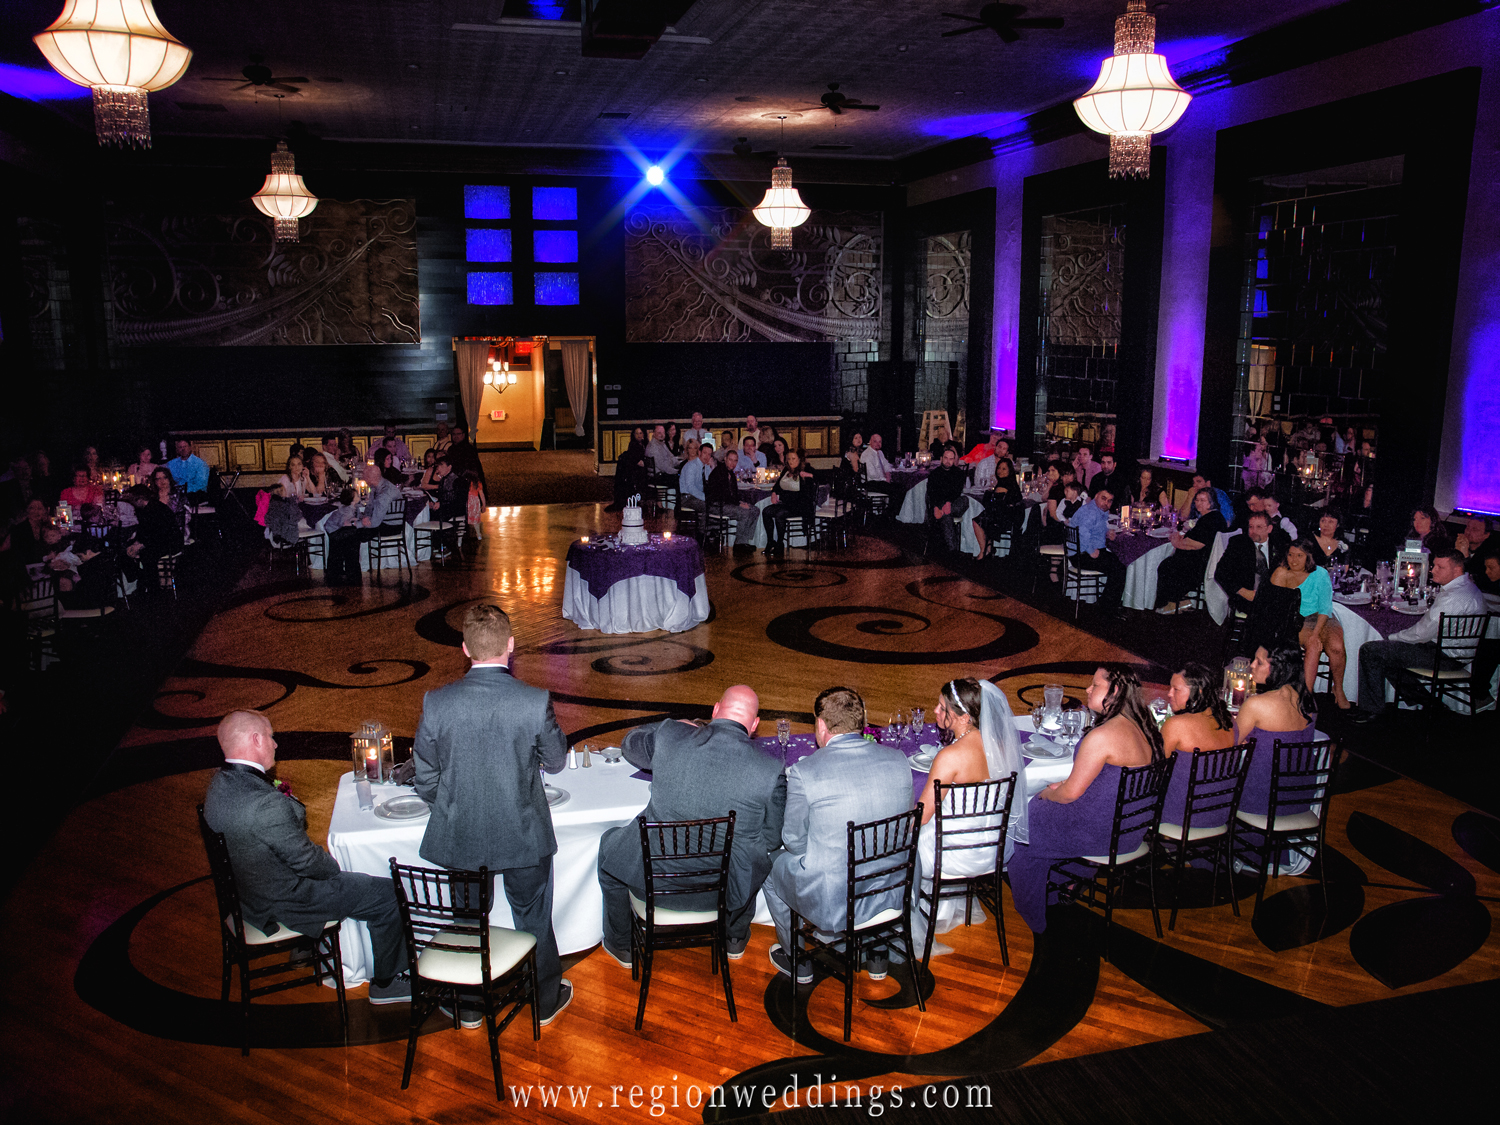 The best man gives his toast as a large group of guests listen and laugh in the spectacular ballroom at The Allure in Laporte, Indiana.